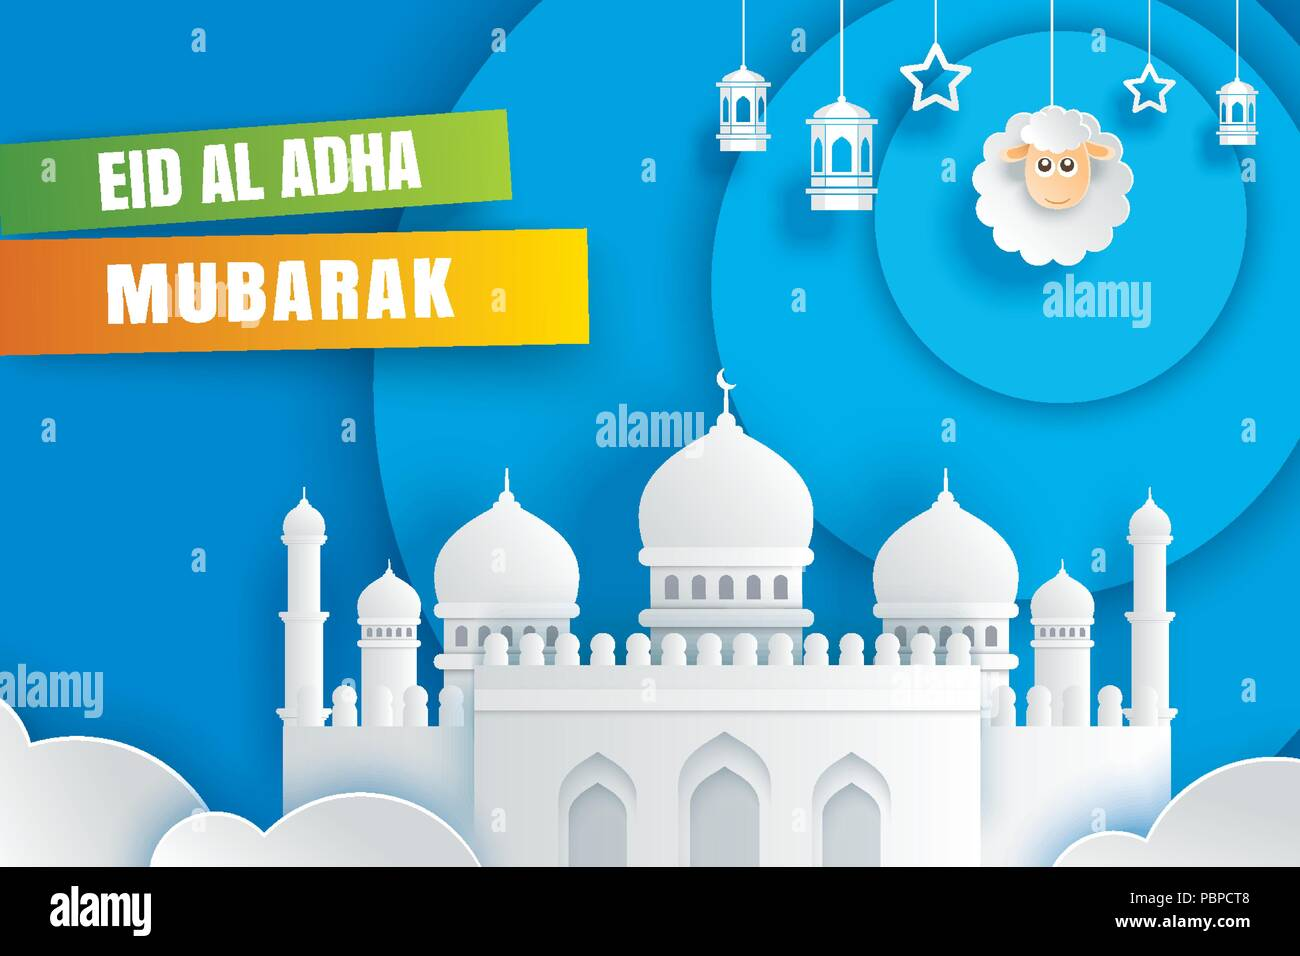 Eid Al Adha Mubarak Celebration Card With Mosque And Sheep In Paper